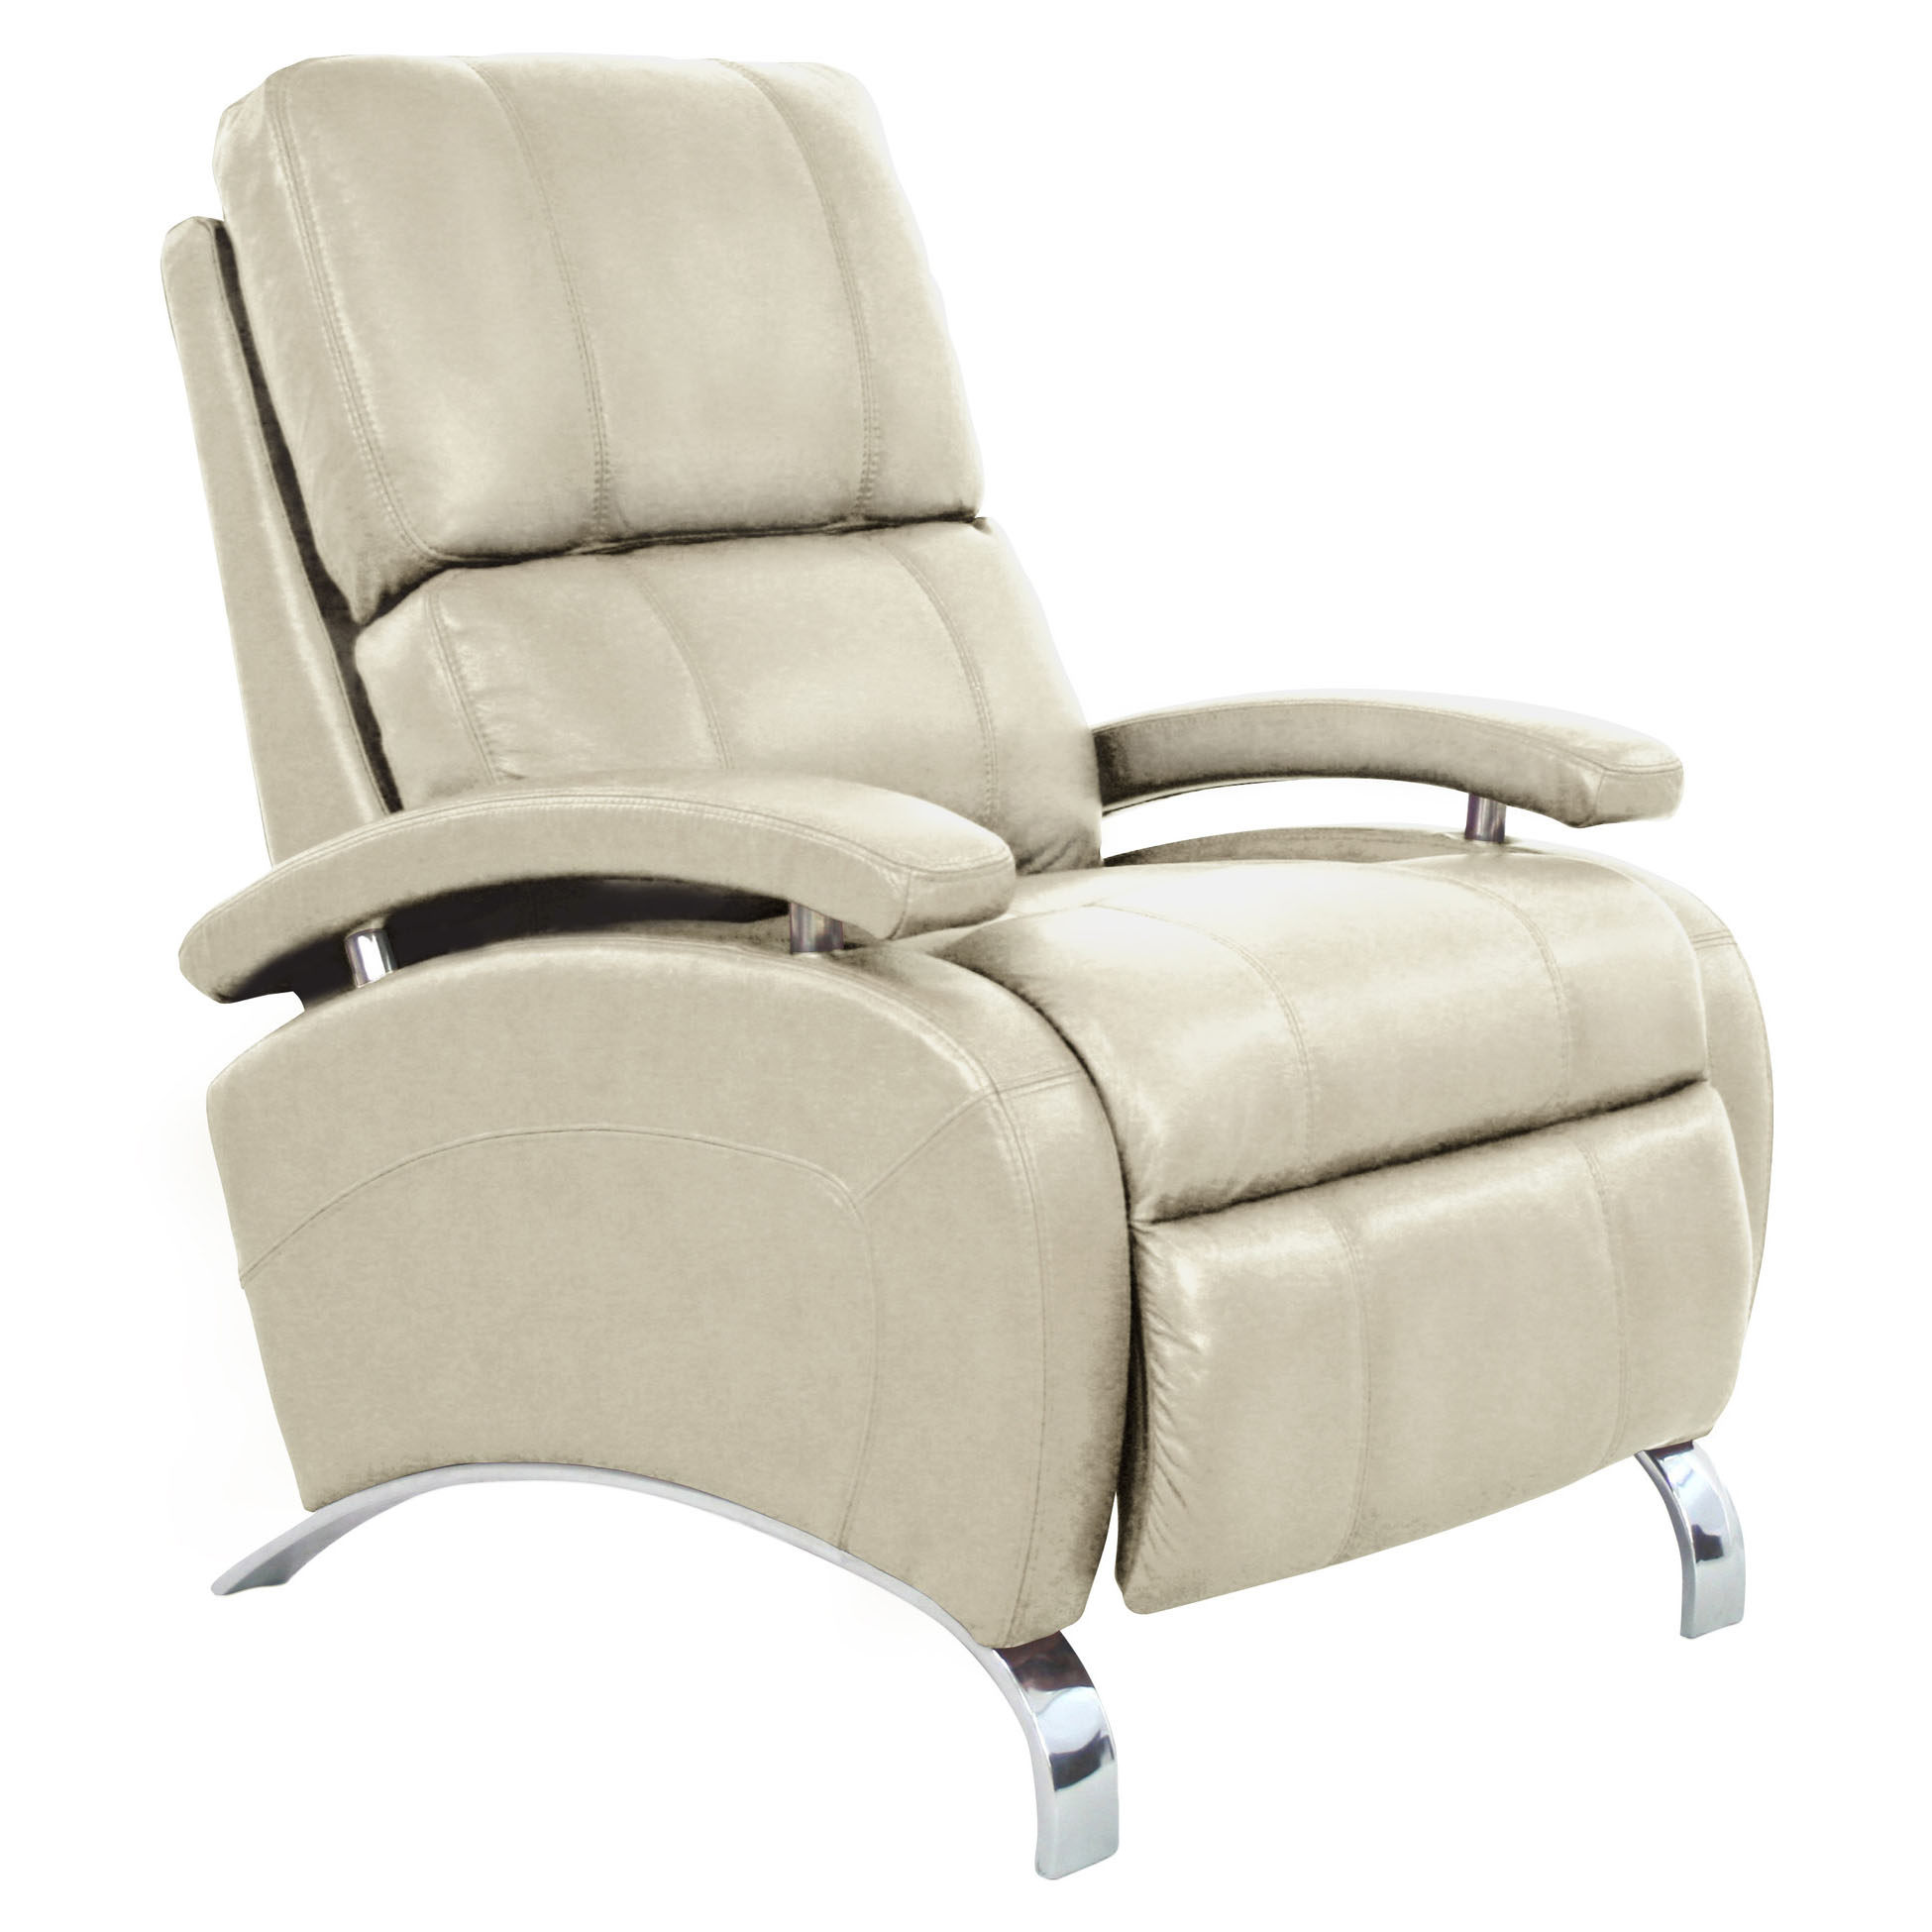 Barcalounger Oracle Ii Recliner Chair Leather Recliner